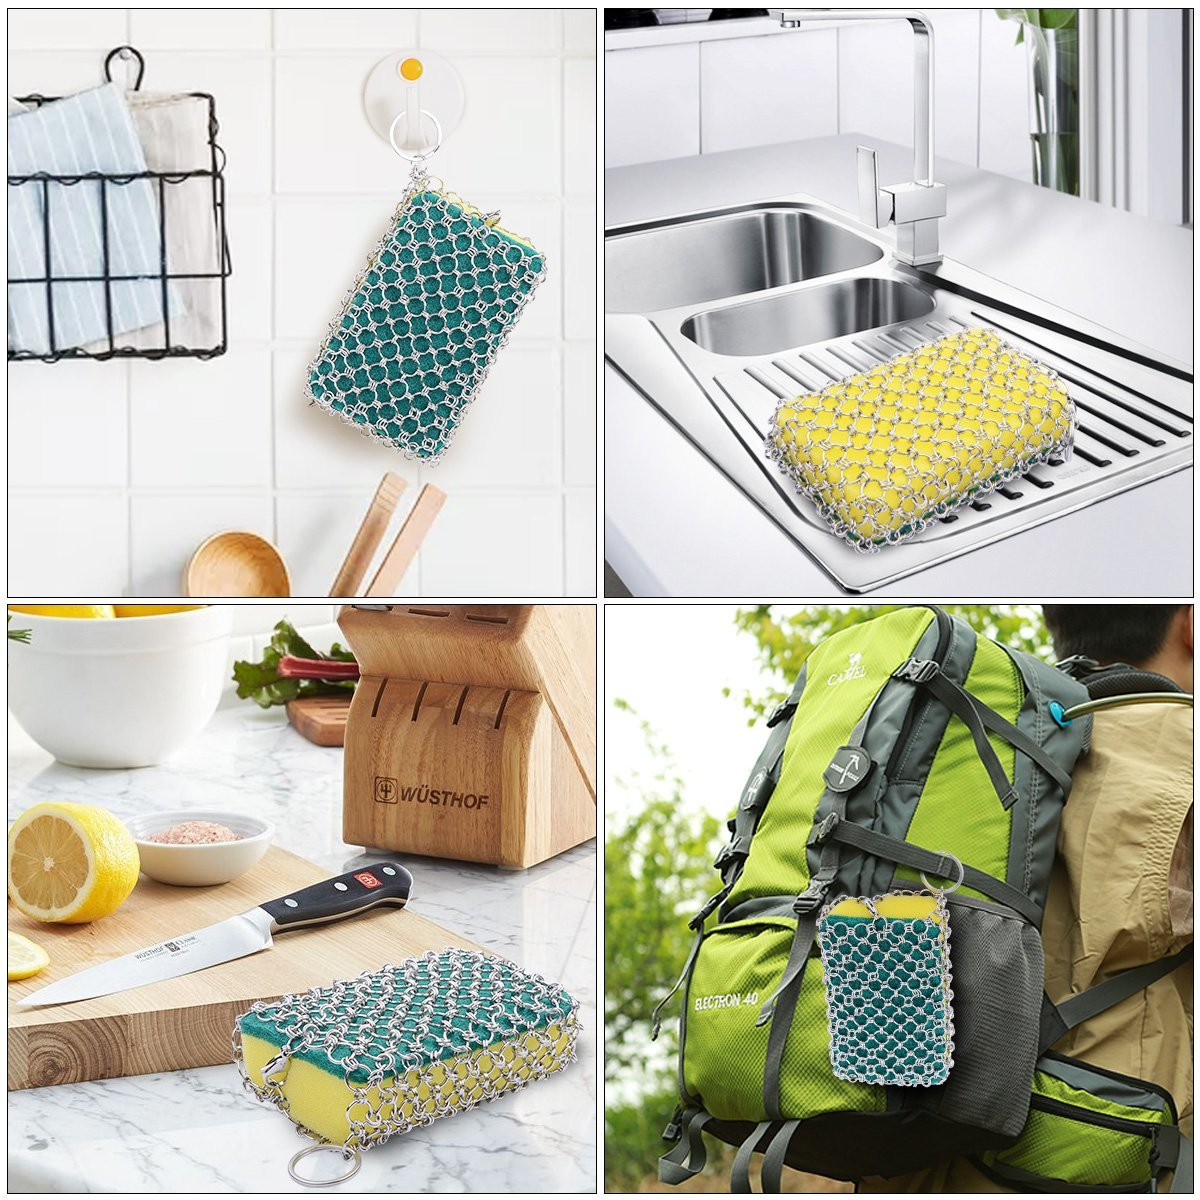 Cast Iron Cleaner,Robao Stainless Steel Cast Iron Chainmail Scrubber + 3pcs Sponges for Cast Iron Pan Cookware Scraper Cast Iron Grill Scraper Skillet Scraper